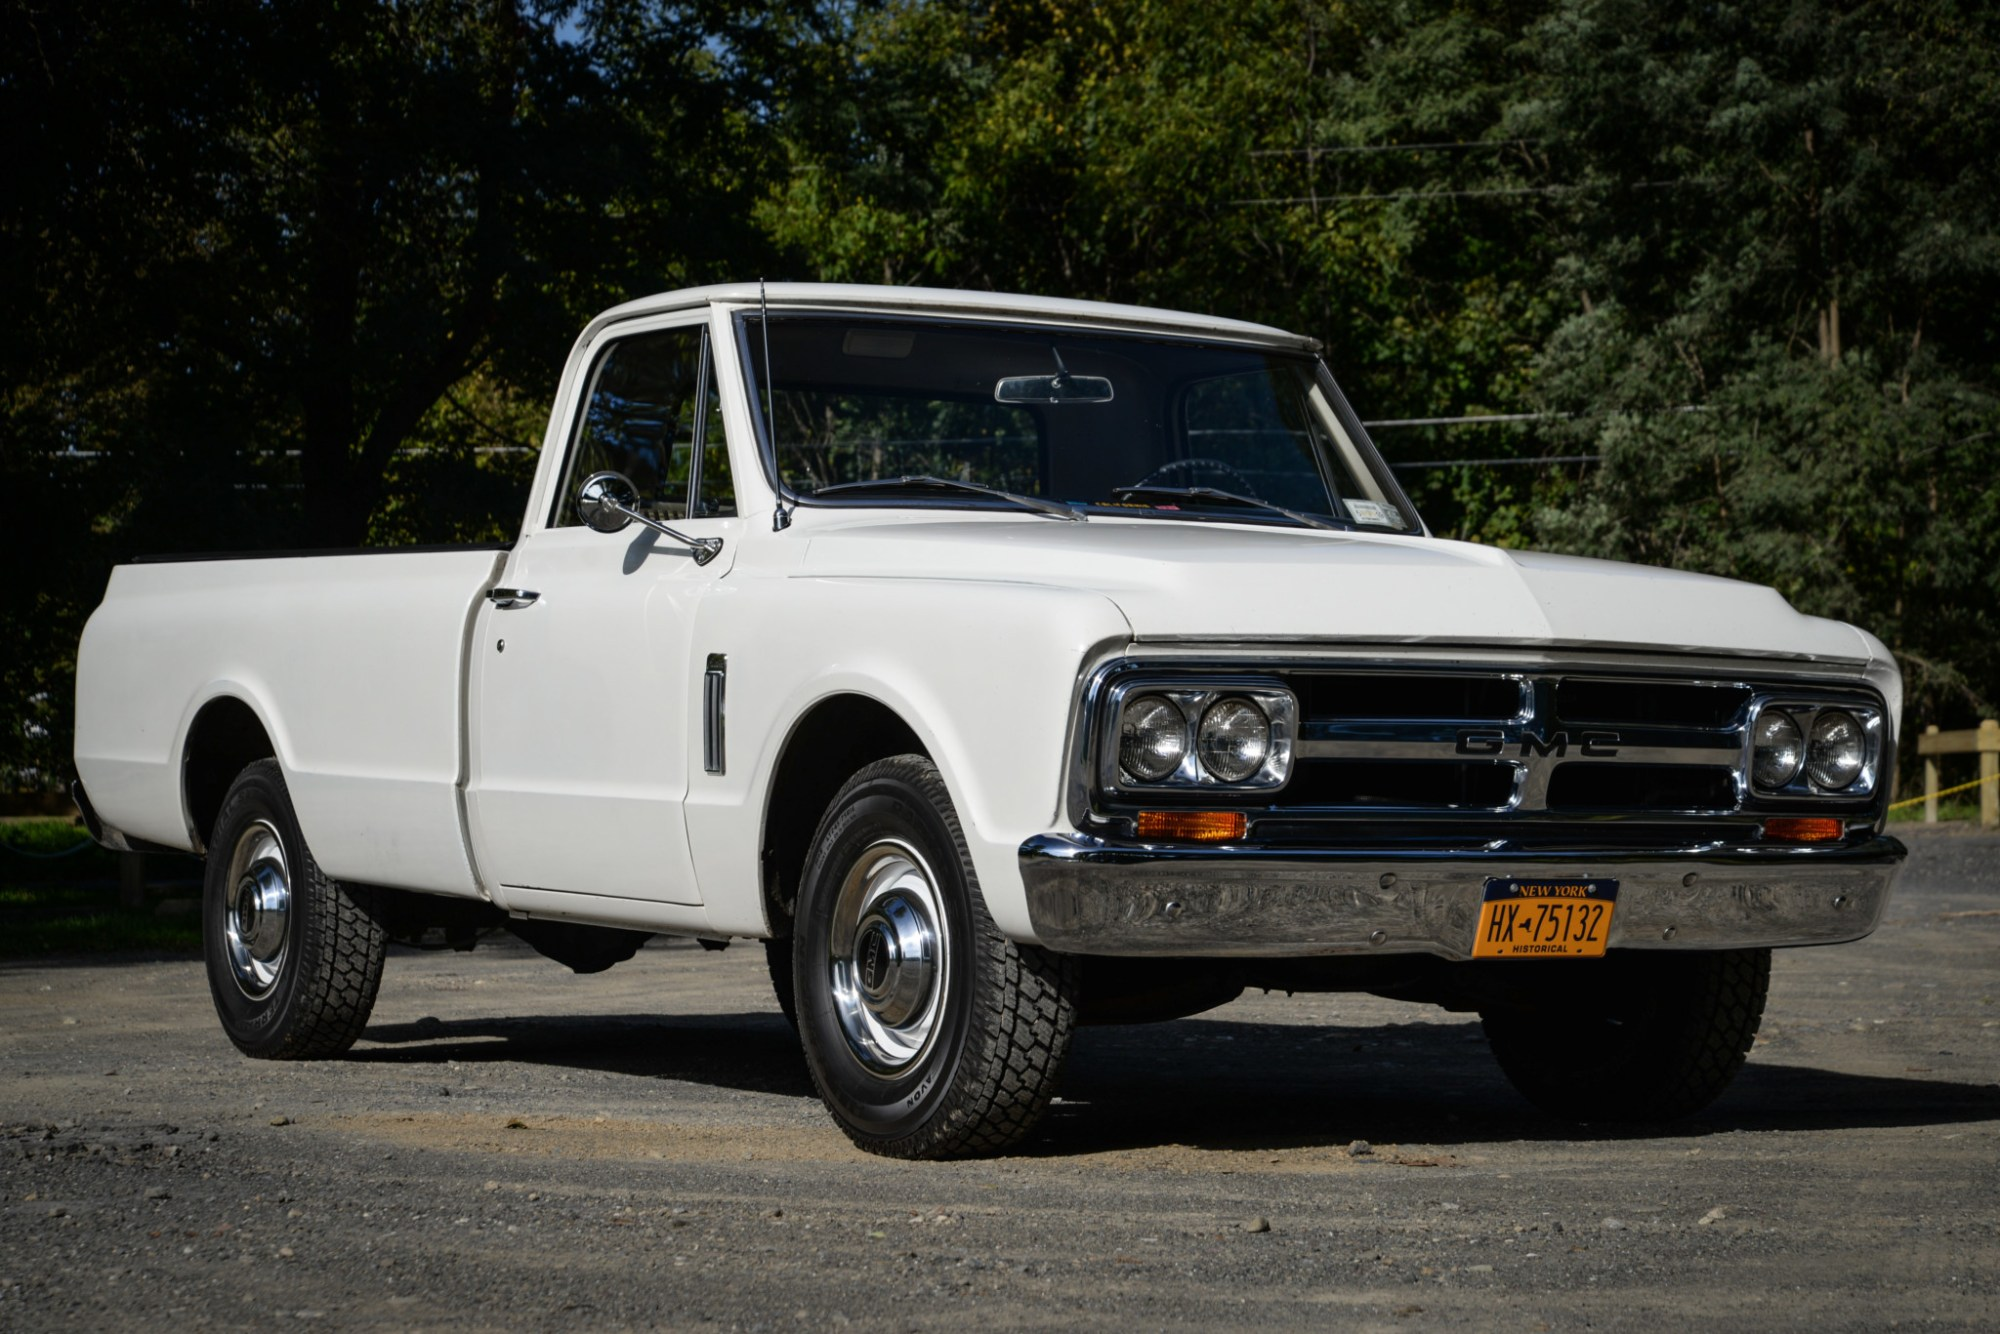 hight resolution of 1967 gmc c20 pickup 4 speed for sale on bat auctions sold for 19 950 on november 14 2018 lot 14 024 bring a trailer